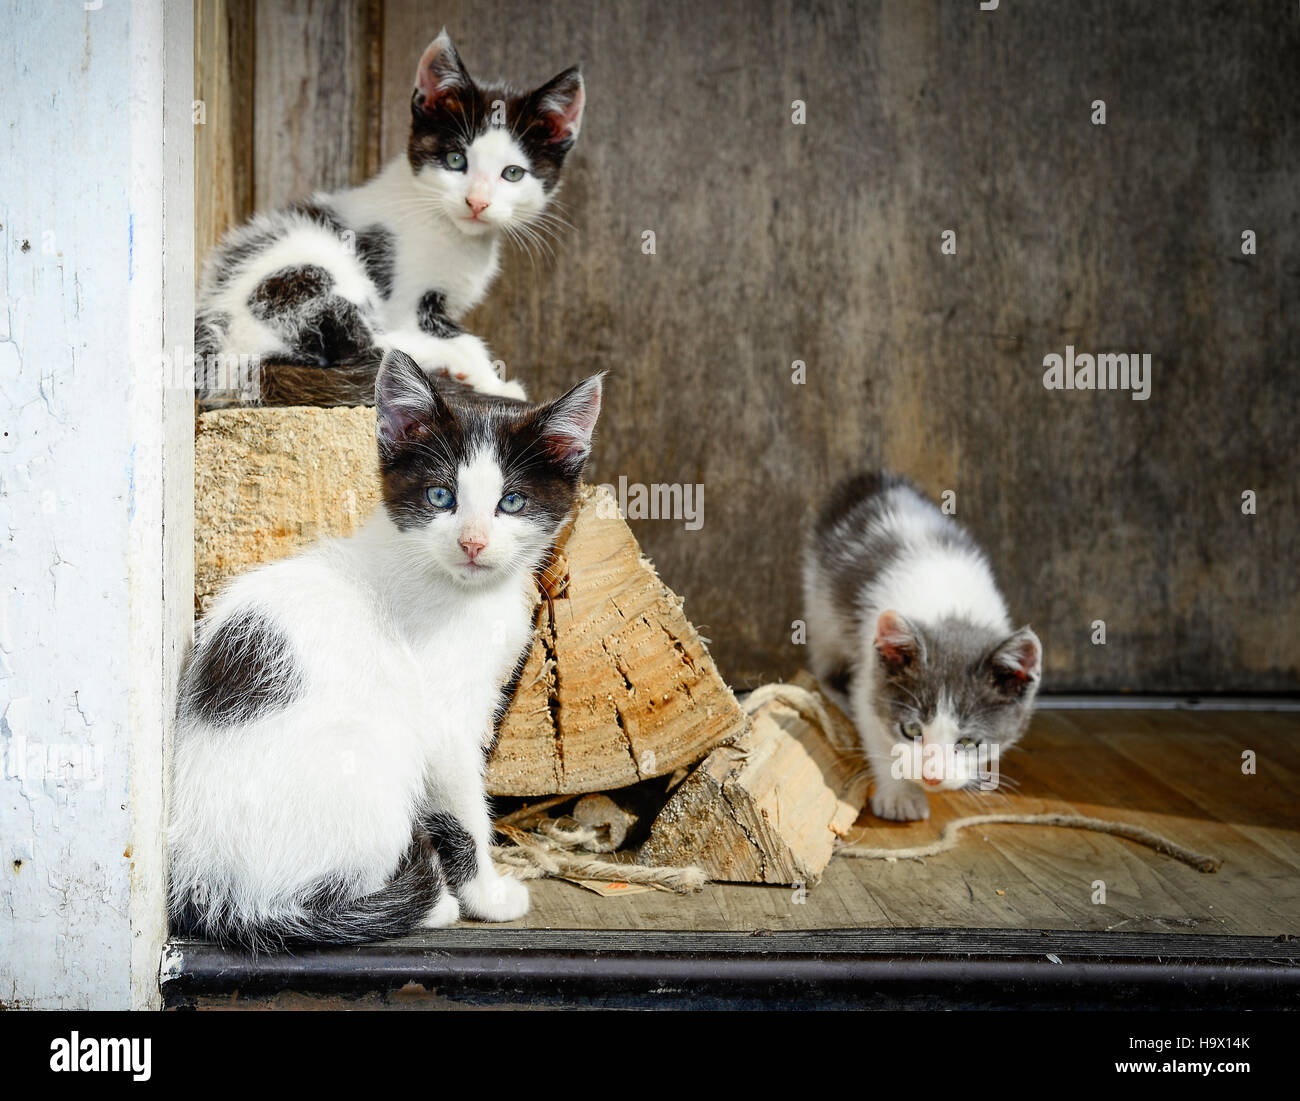 gatitos / cats - Stock Image